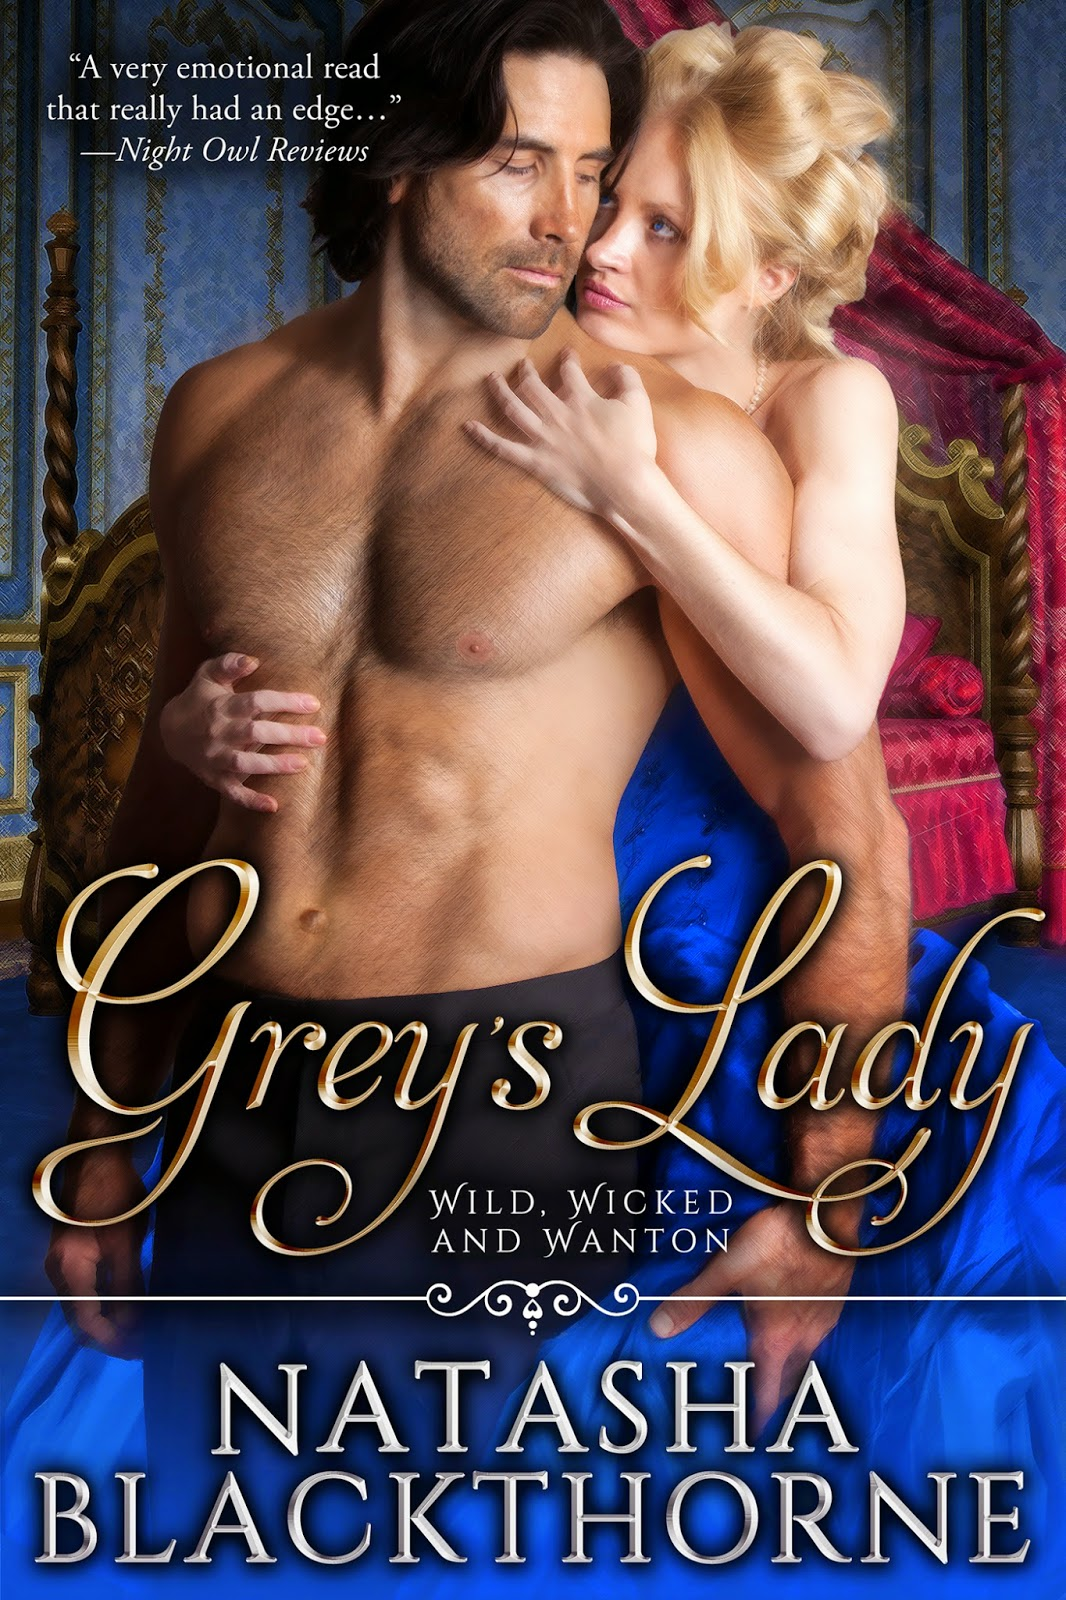 http://www.amazon.com/Greys-Lady-Wild-Wicked-Wanton-ebook/dp/B00FMZL73C